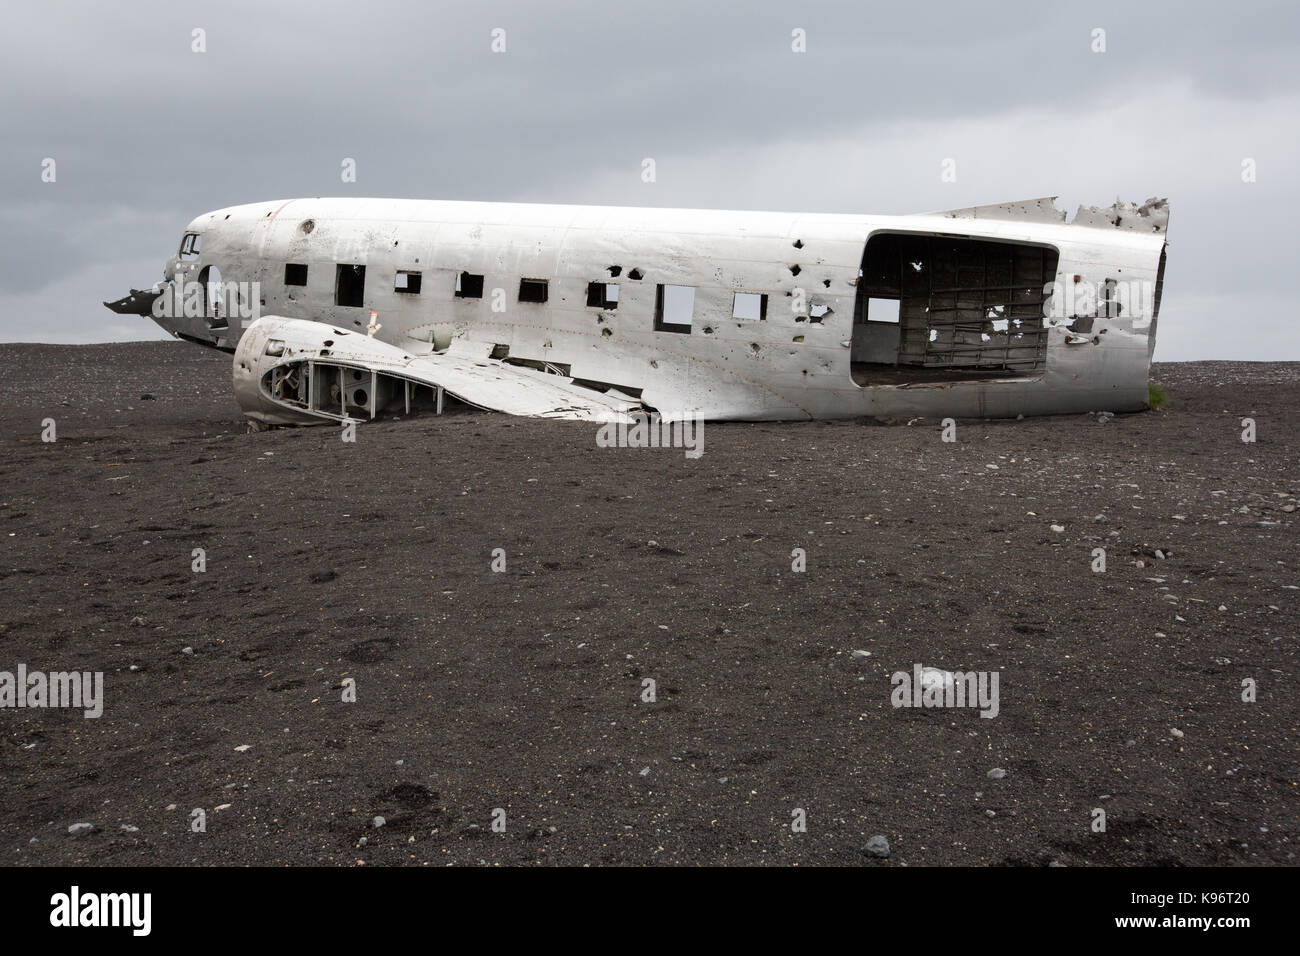 An abandoned United States Navy plane crashed and rests in black sand. - Stock Image